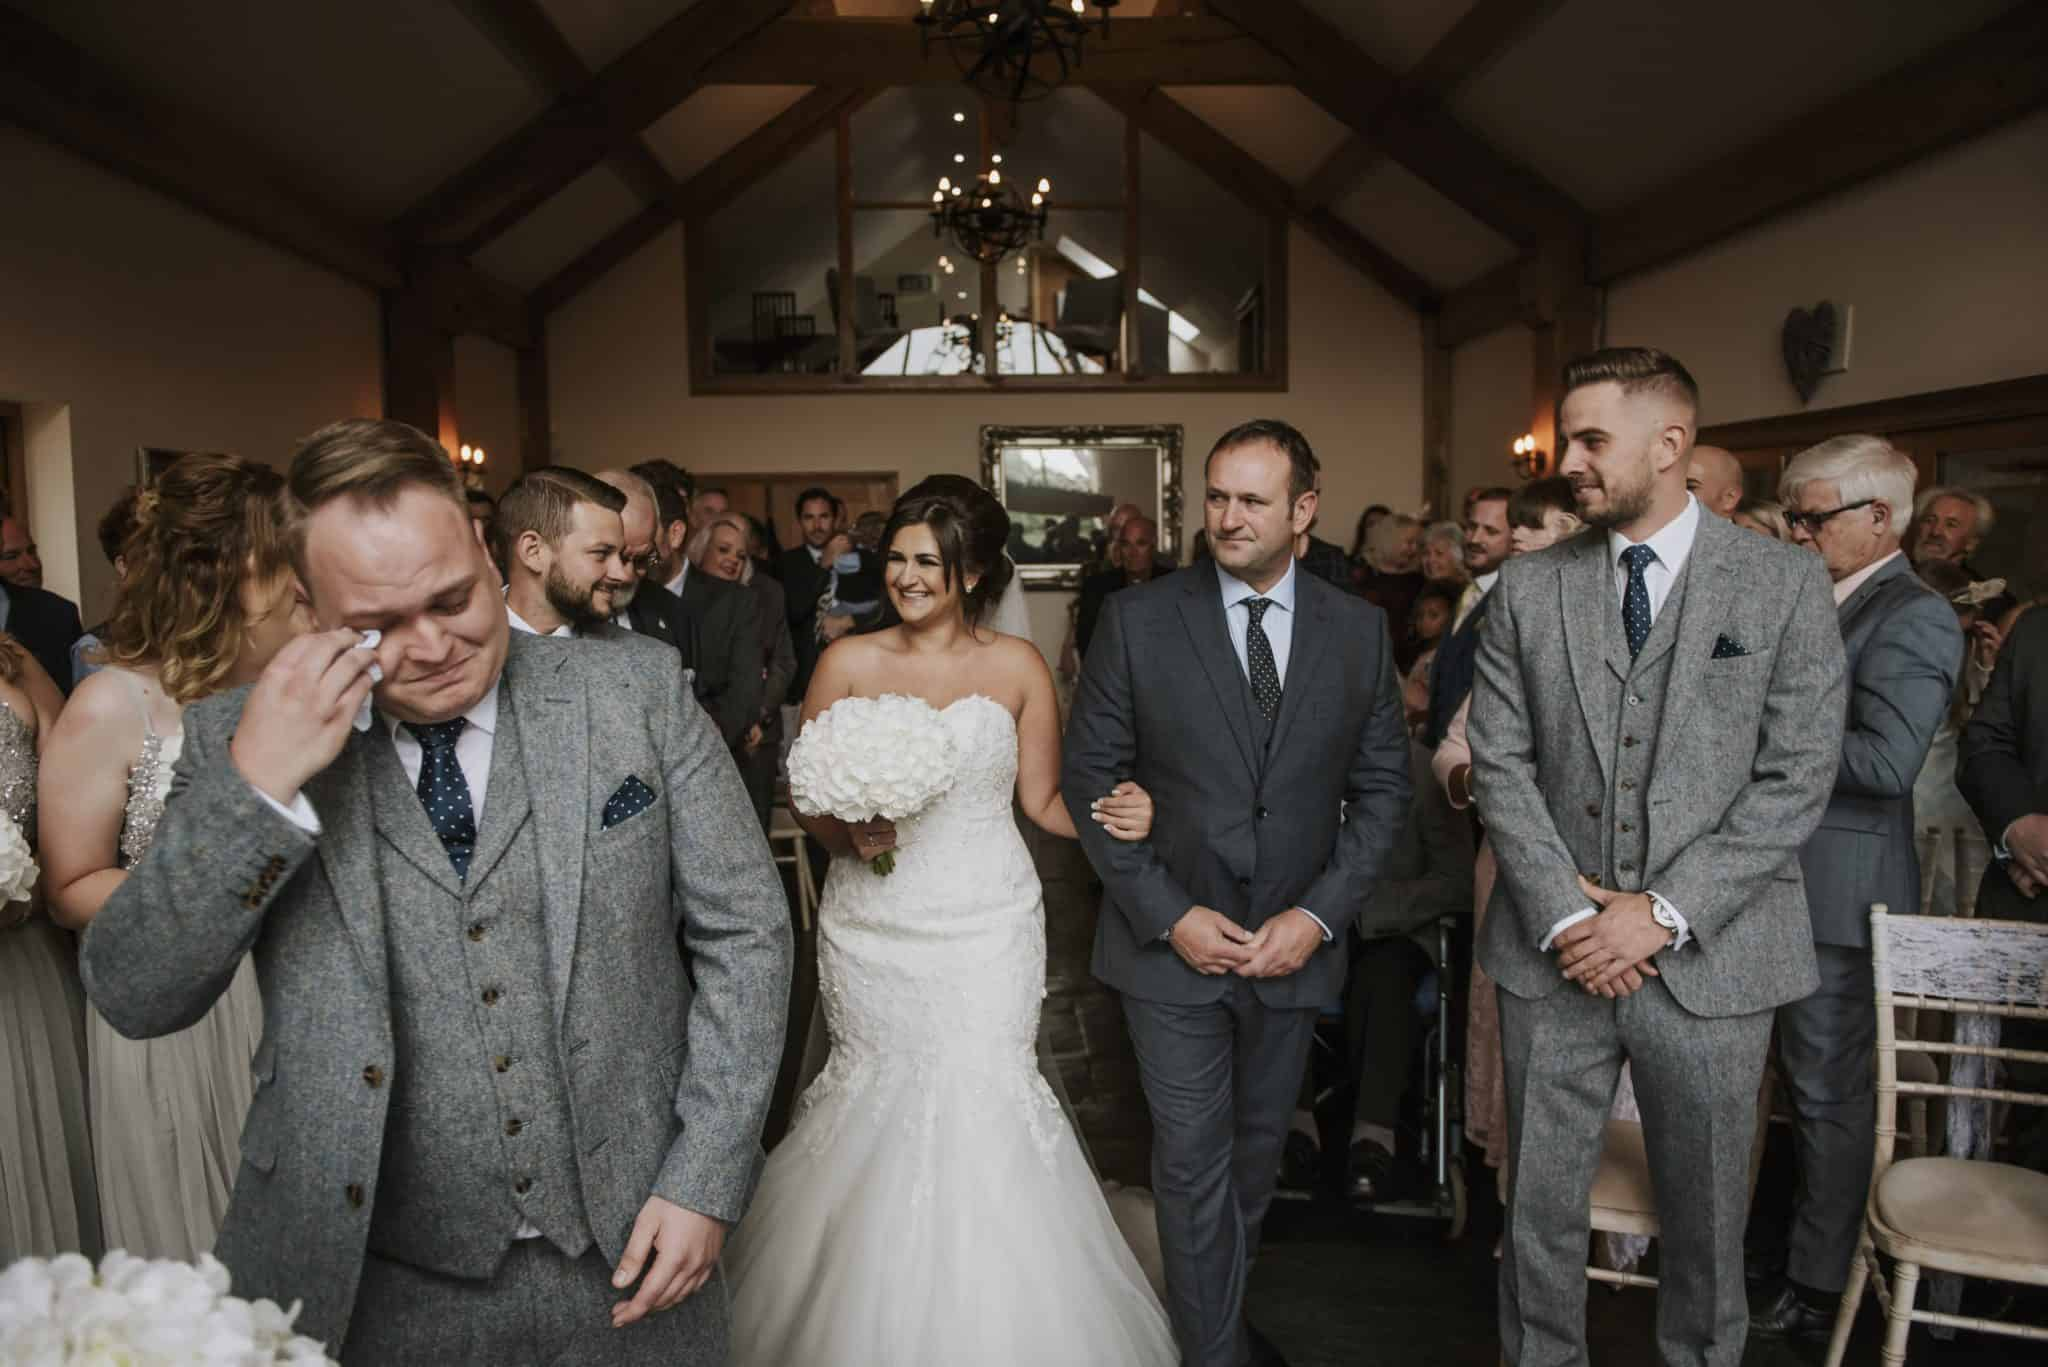 Bride and father walk down aisle as groom cries